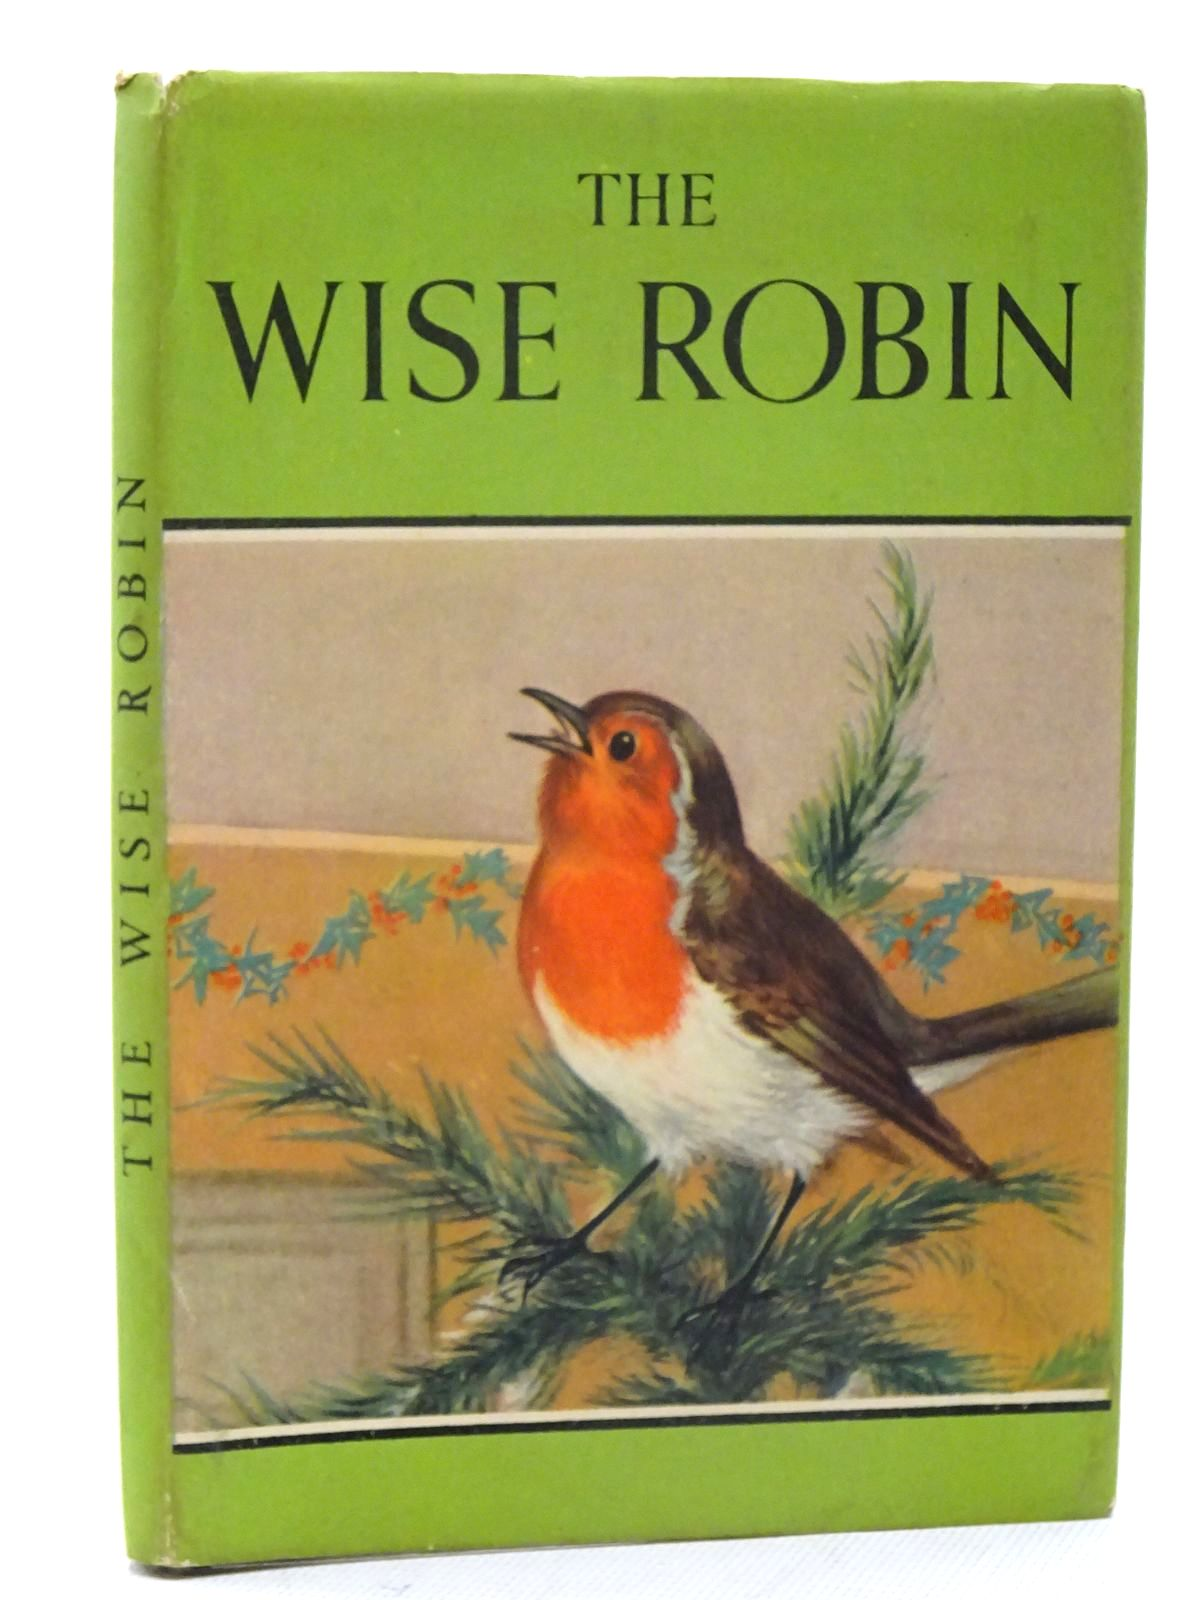 Photo of THE WISE ROBIN written by Barr, Noel illustrated by Hickling, P.B. published by Wills & Hepworth Ltd. (STOCK CODE: 1317415)  for sale by Stella & Rose's Books